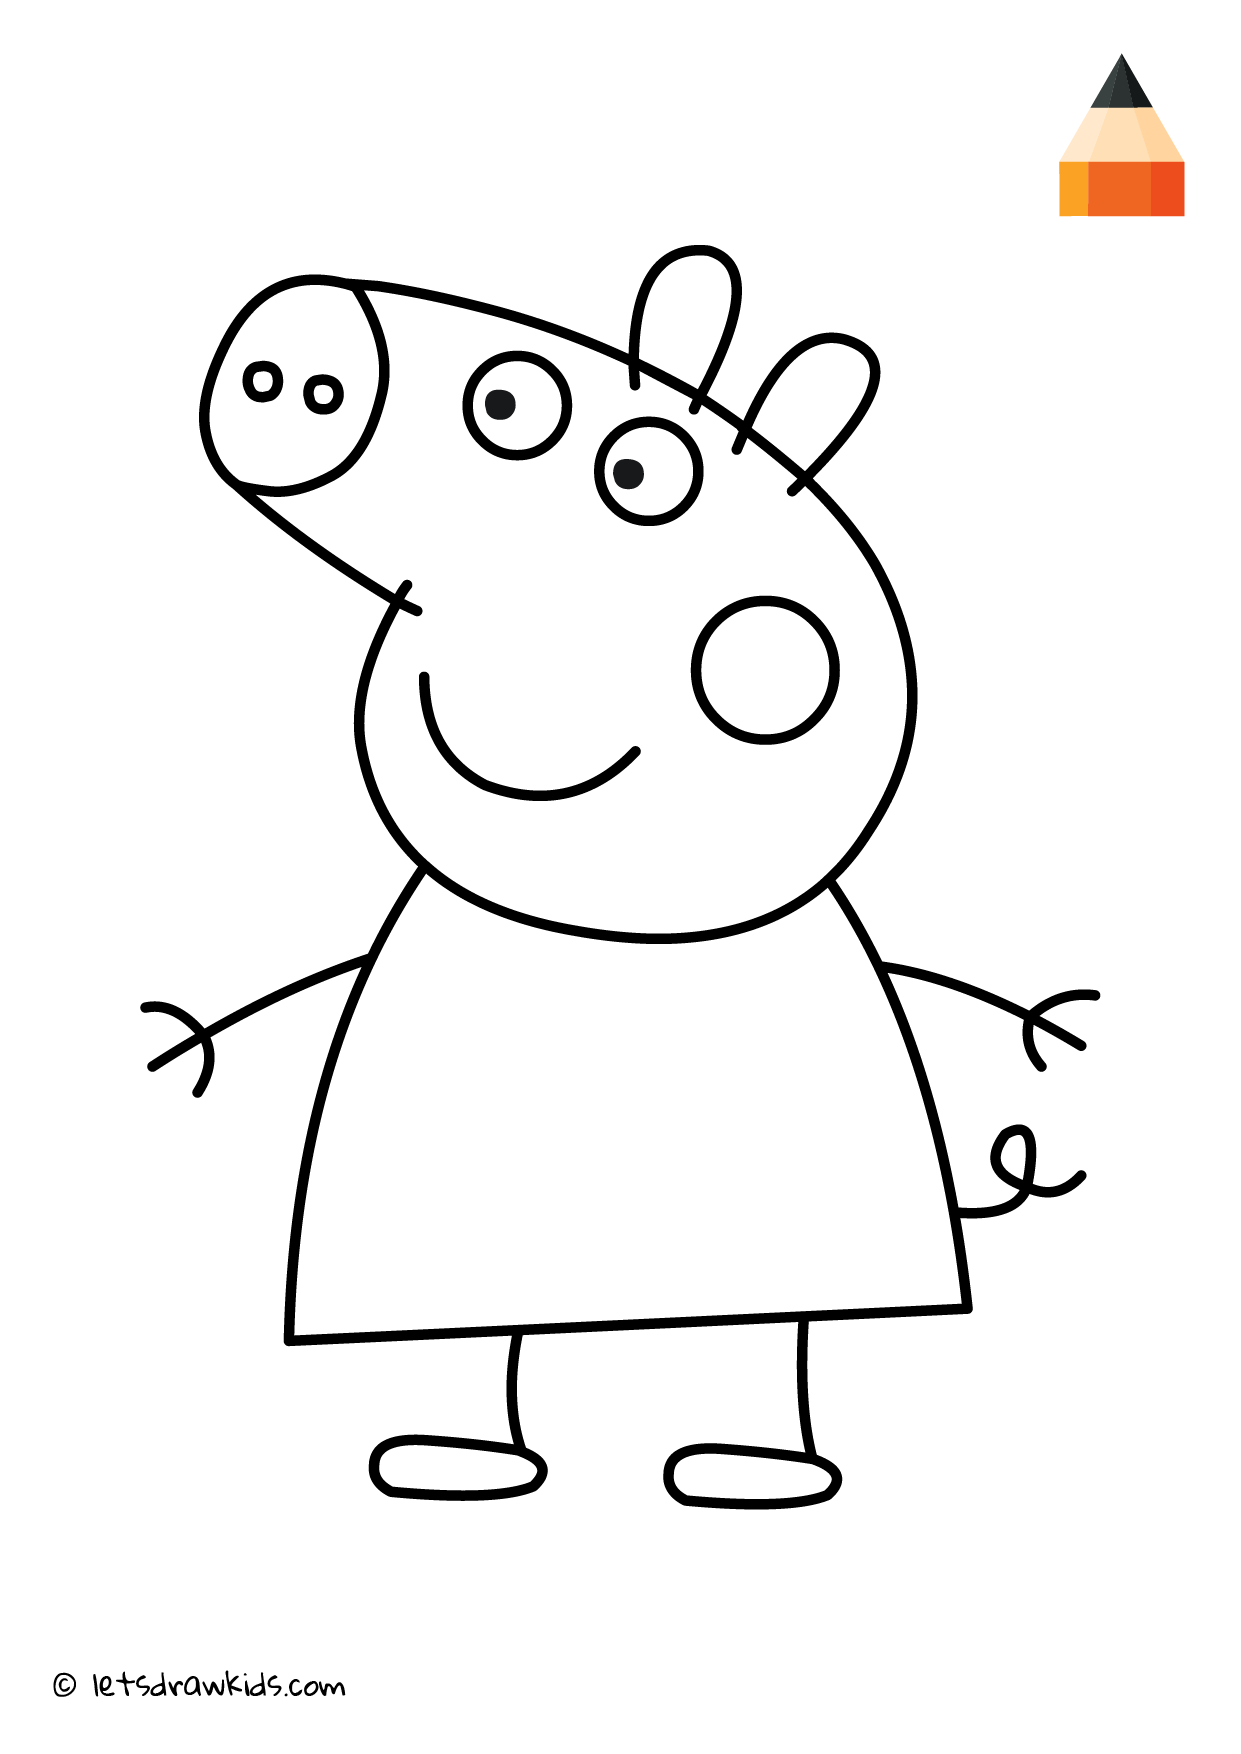 Coloring Page Peppa Pig Toy Story Coloring Pages Puppy Coloring Pages Minnie Mouse Coloring Pages